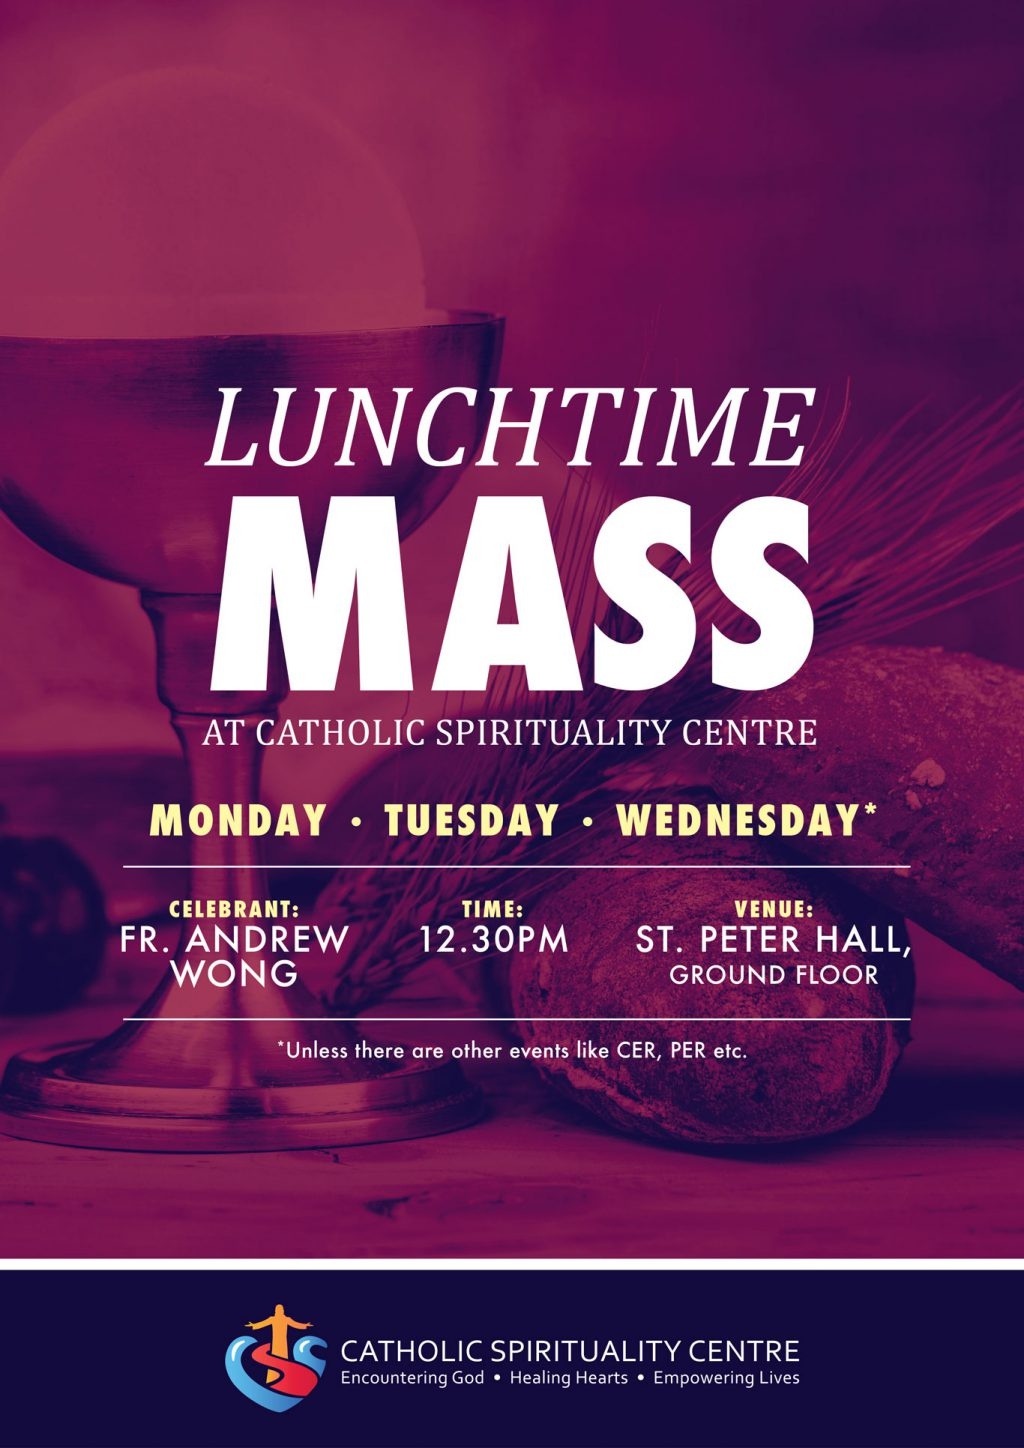 Lunchtime Mass